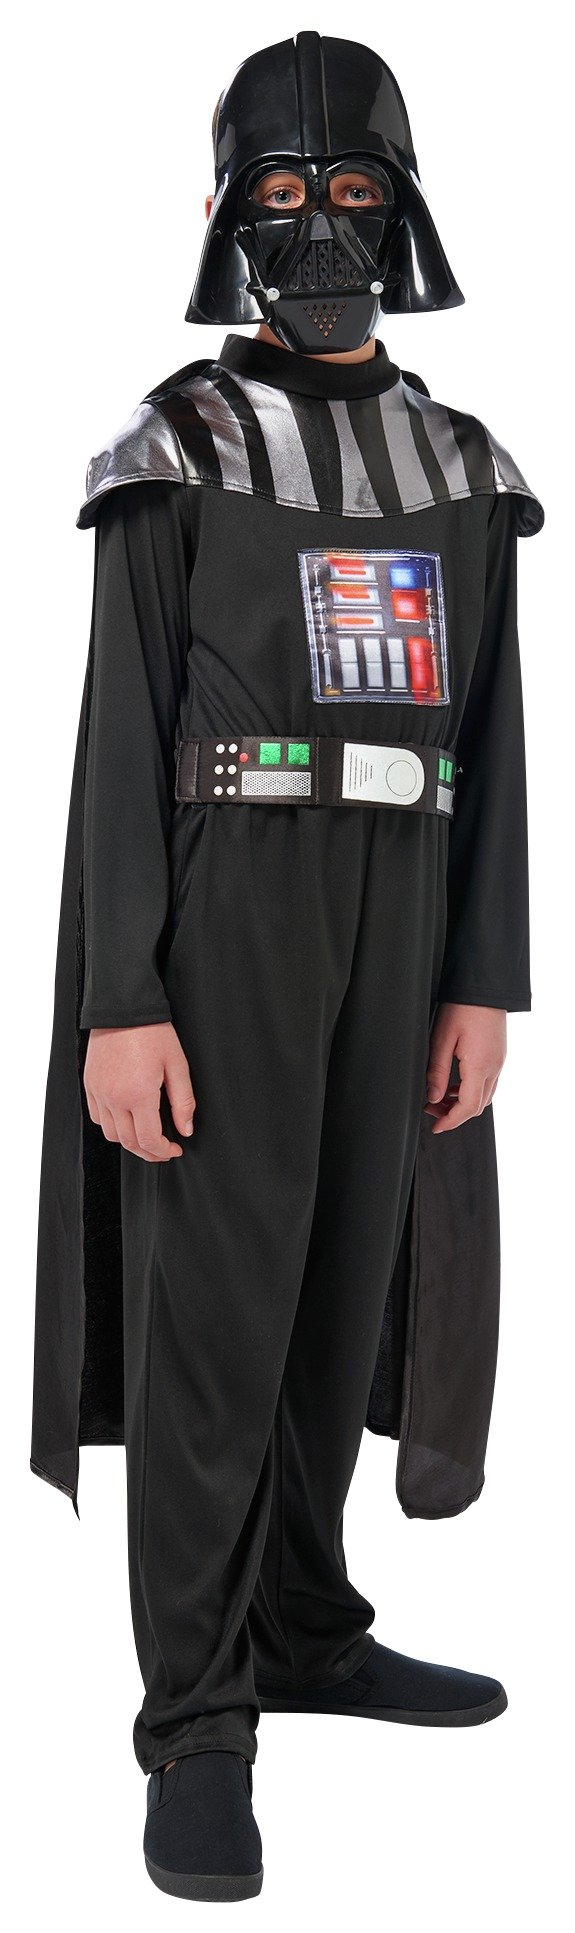 Star Wars Children's Darth Vader Fancy Dress - 7-8 Years